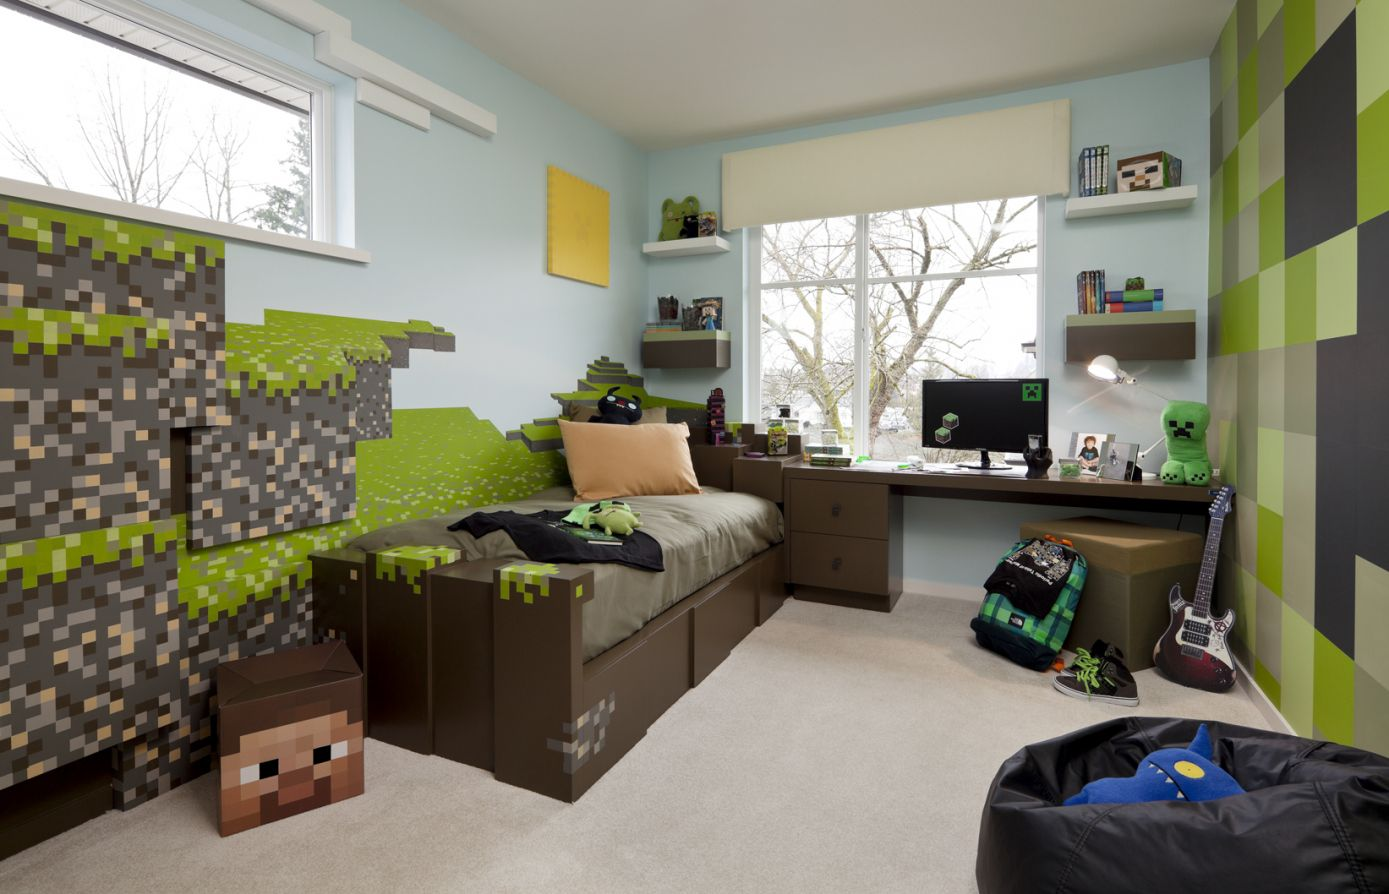 Merveilleux Use The Mossy Rock To Left For Shelving That Pops Out 12 Awesome Minecraft  Bedrooms Ideas